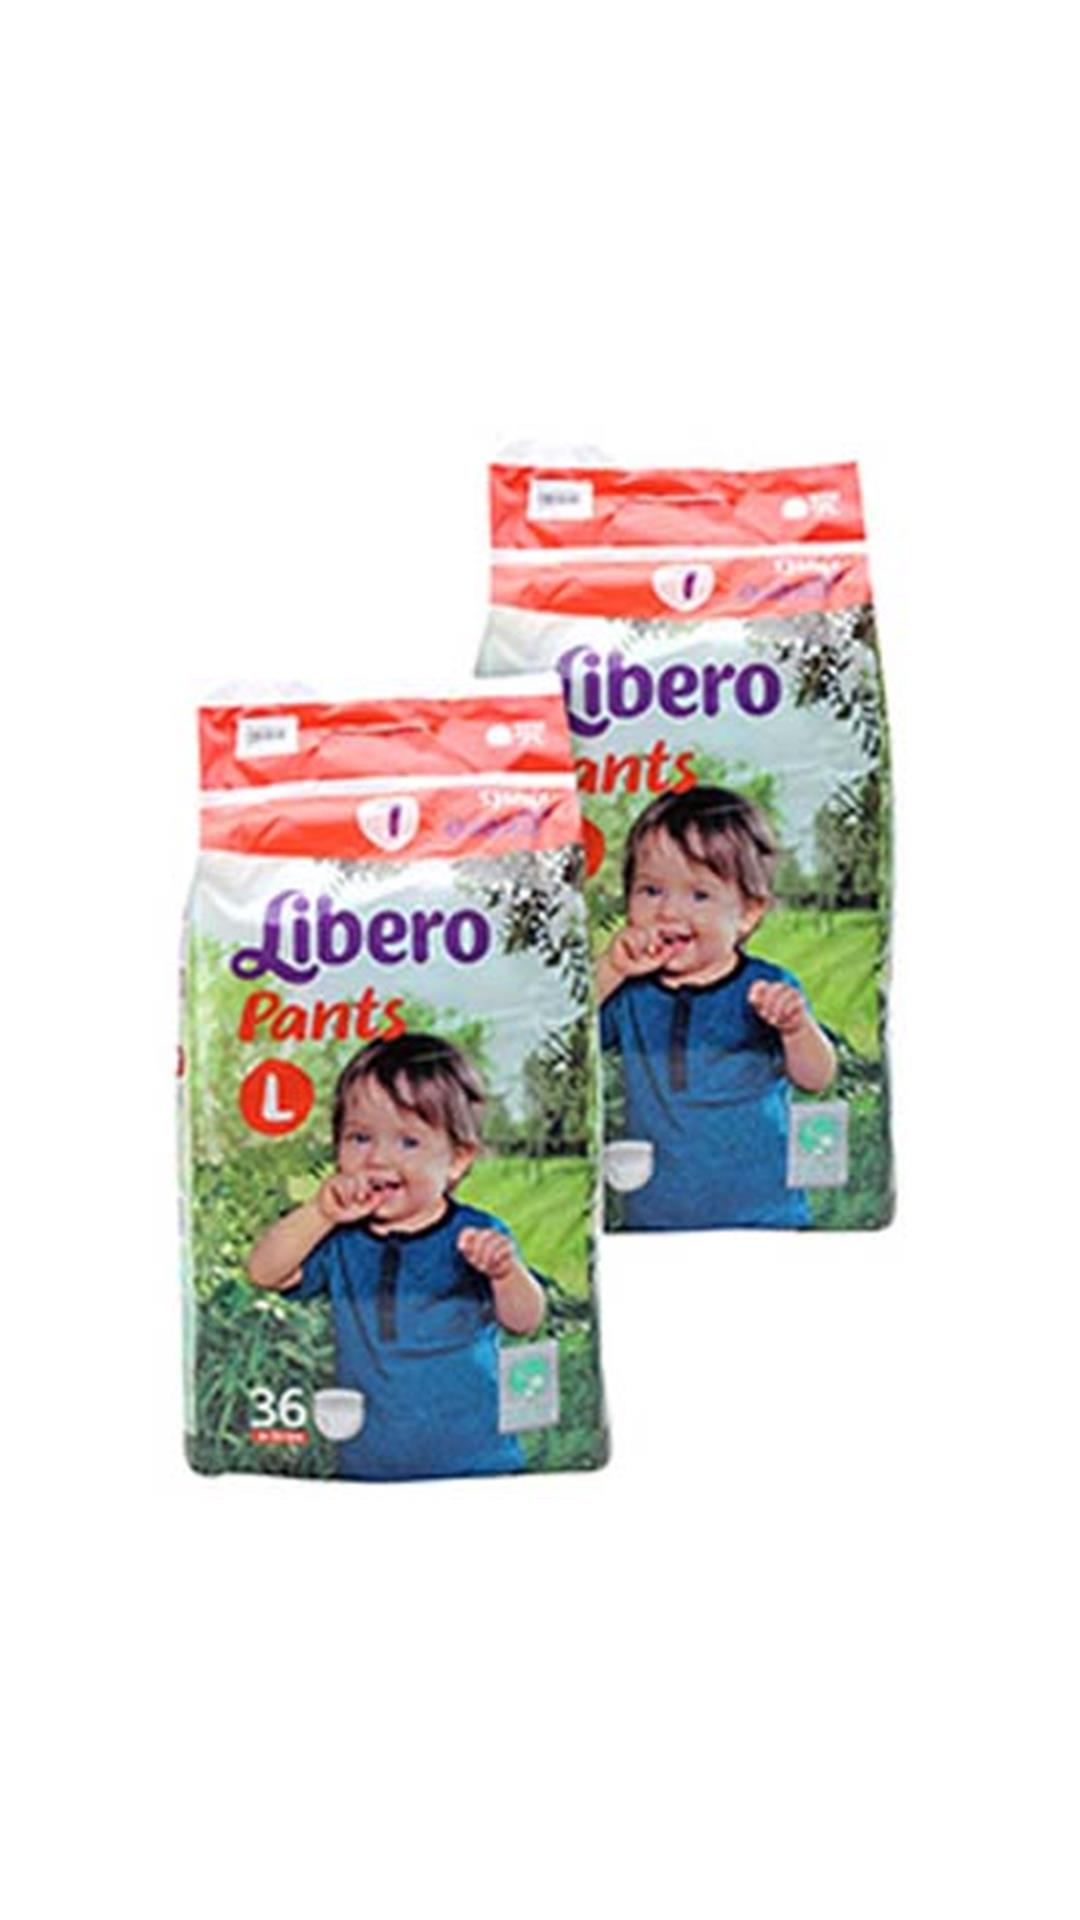 Libero Pants Diaper Large 36 Pcs (Pack of 3)